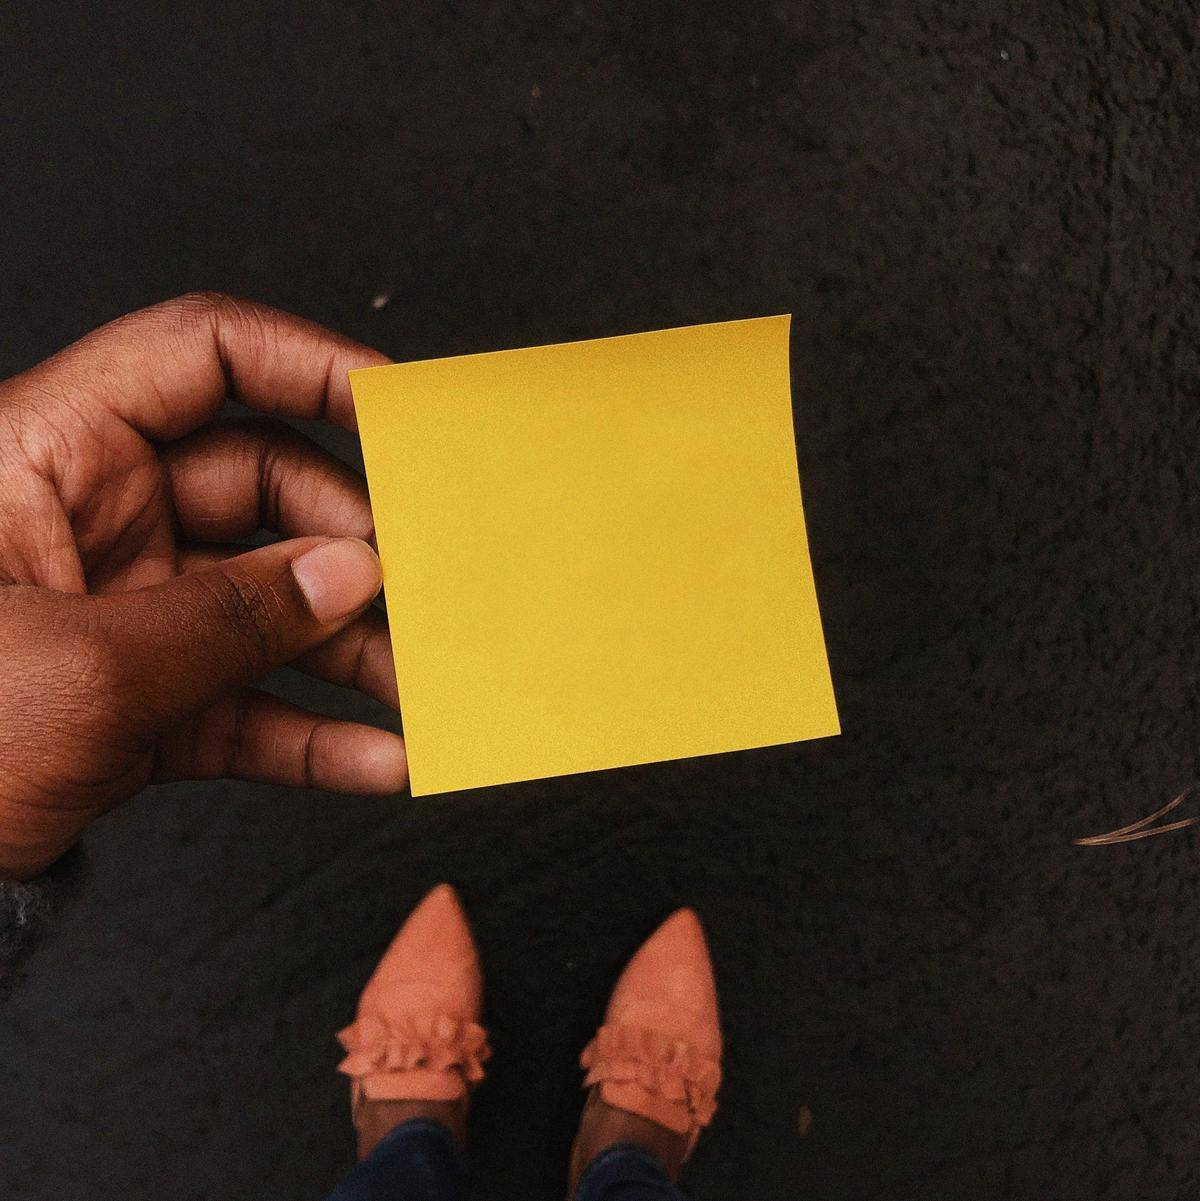 Close-up of a yellow sticky note a woman is holding in her hands.